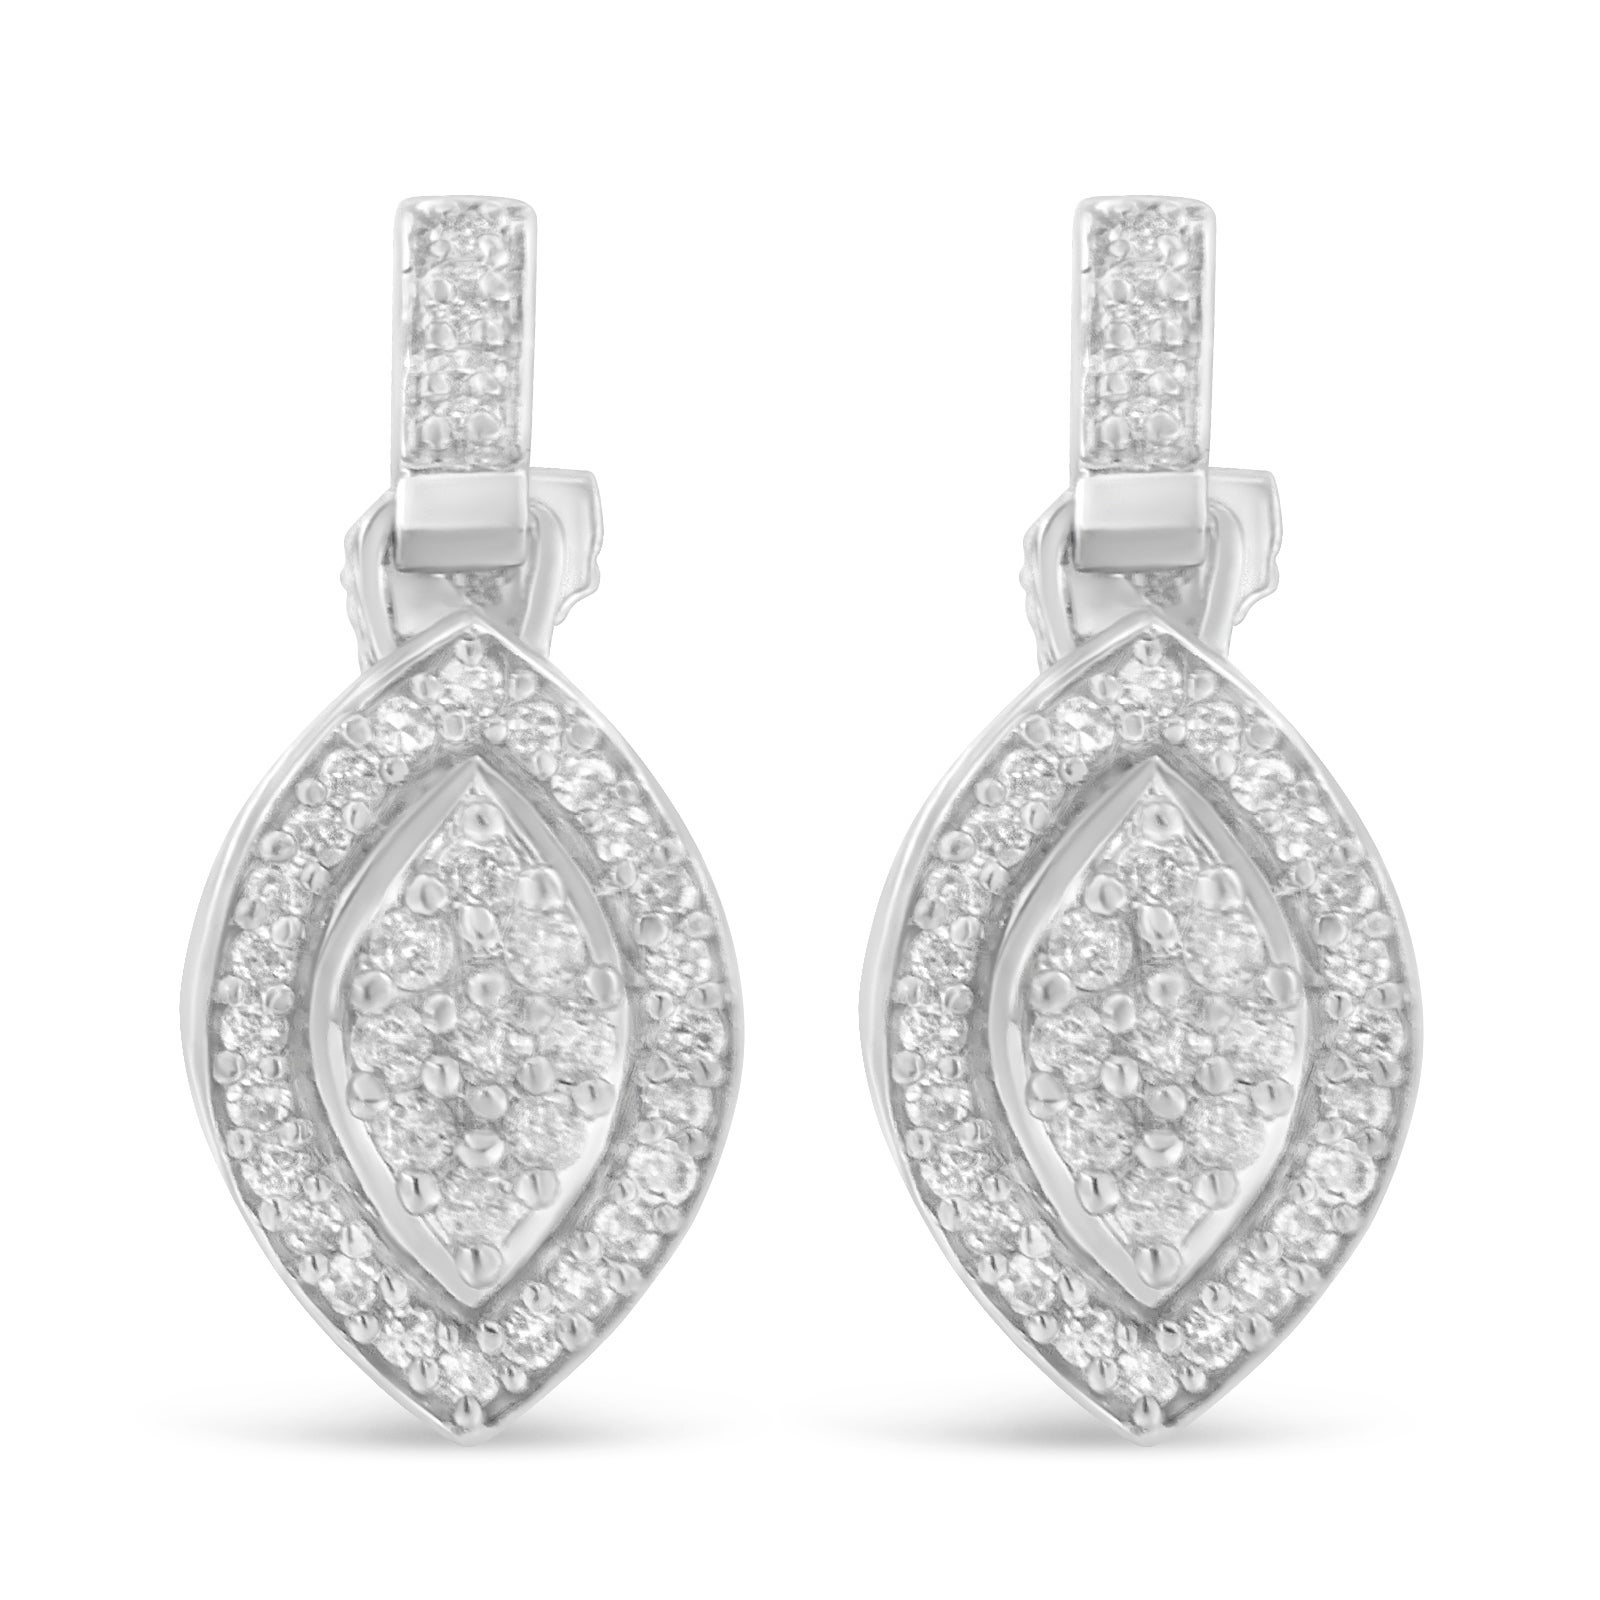 earrings product in original silver luulla shape on cutout rectangular diamond studs